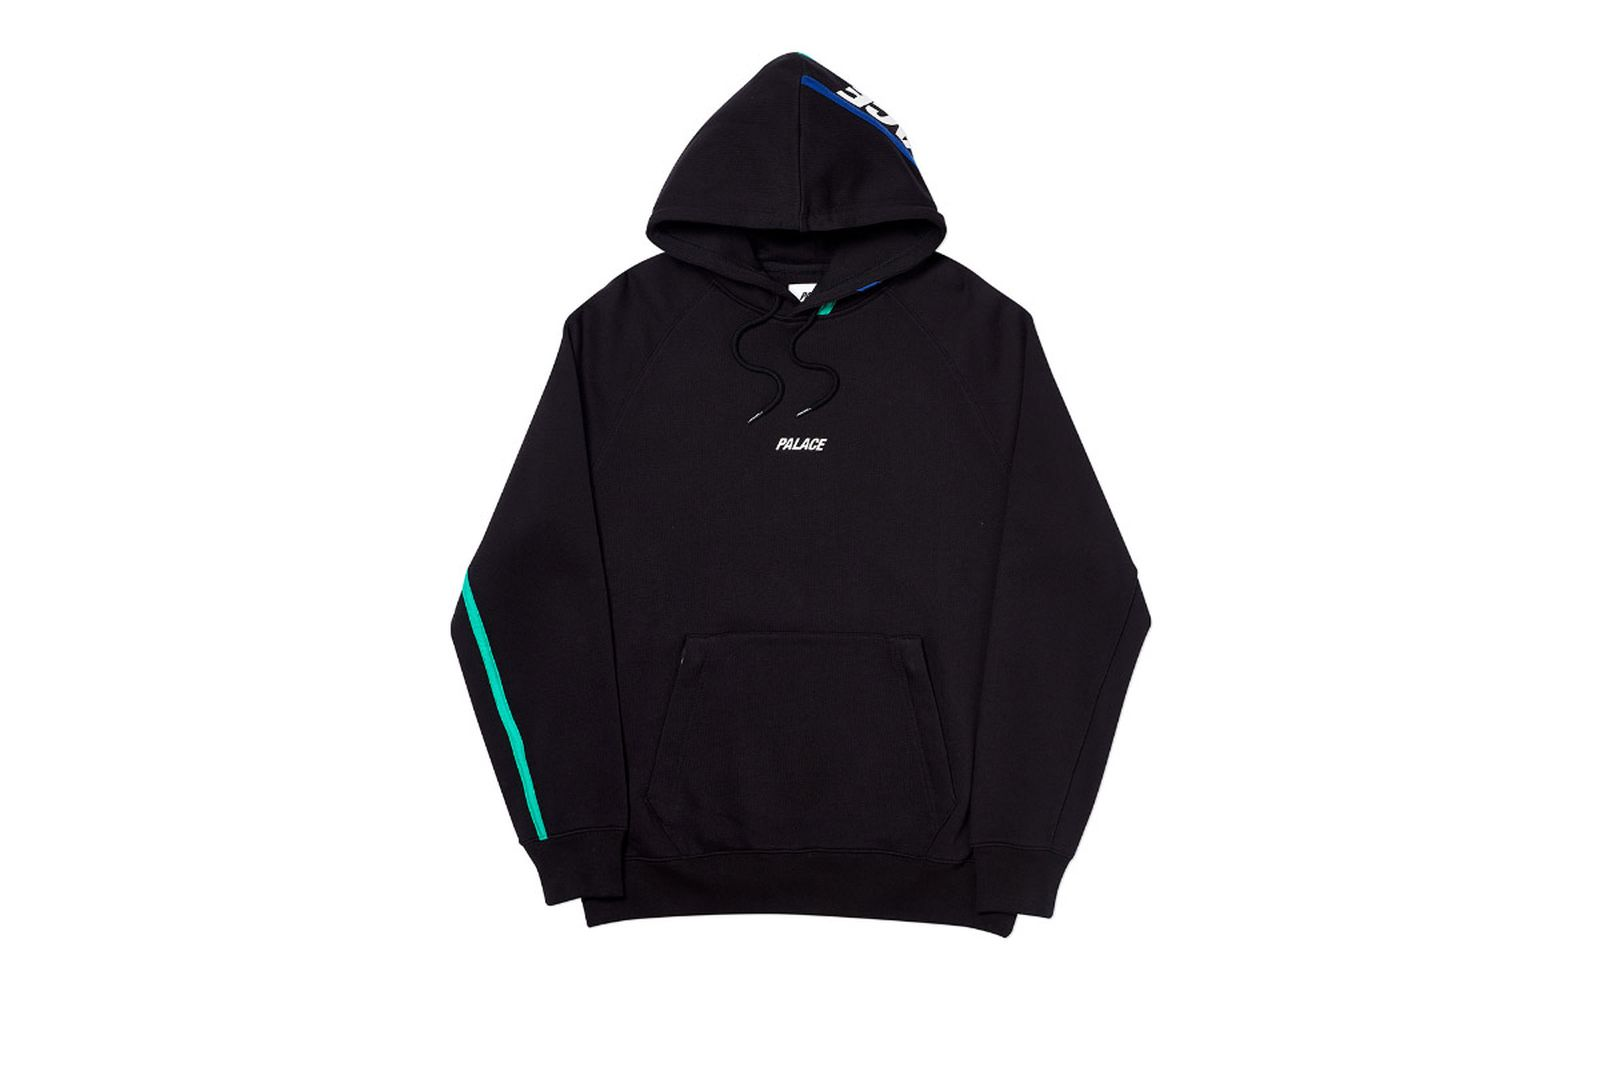 Palace 2019 Autumn Hood Dome Black Front